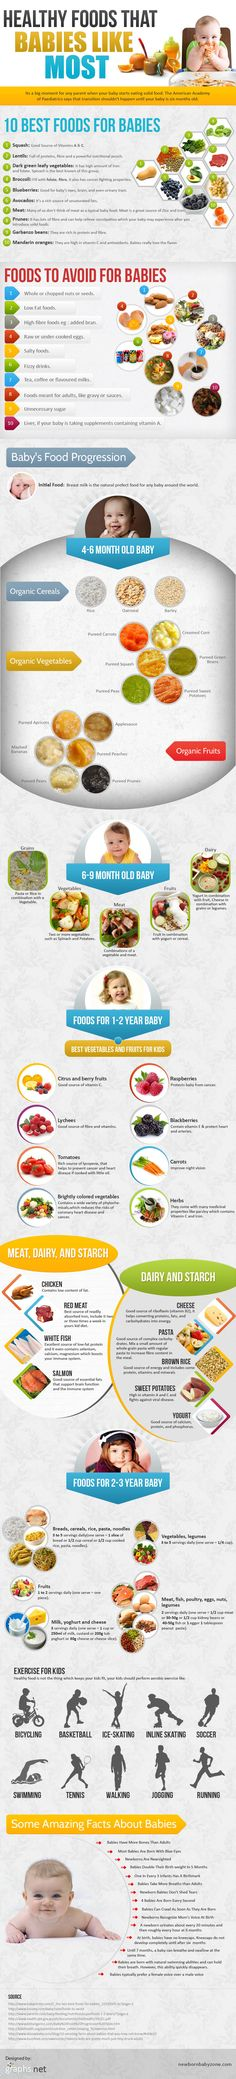 A healthy food guide for babies and toddlers (4 months to 3 years old)